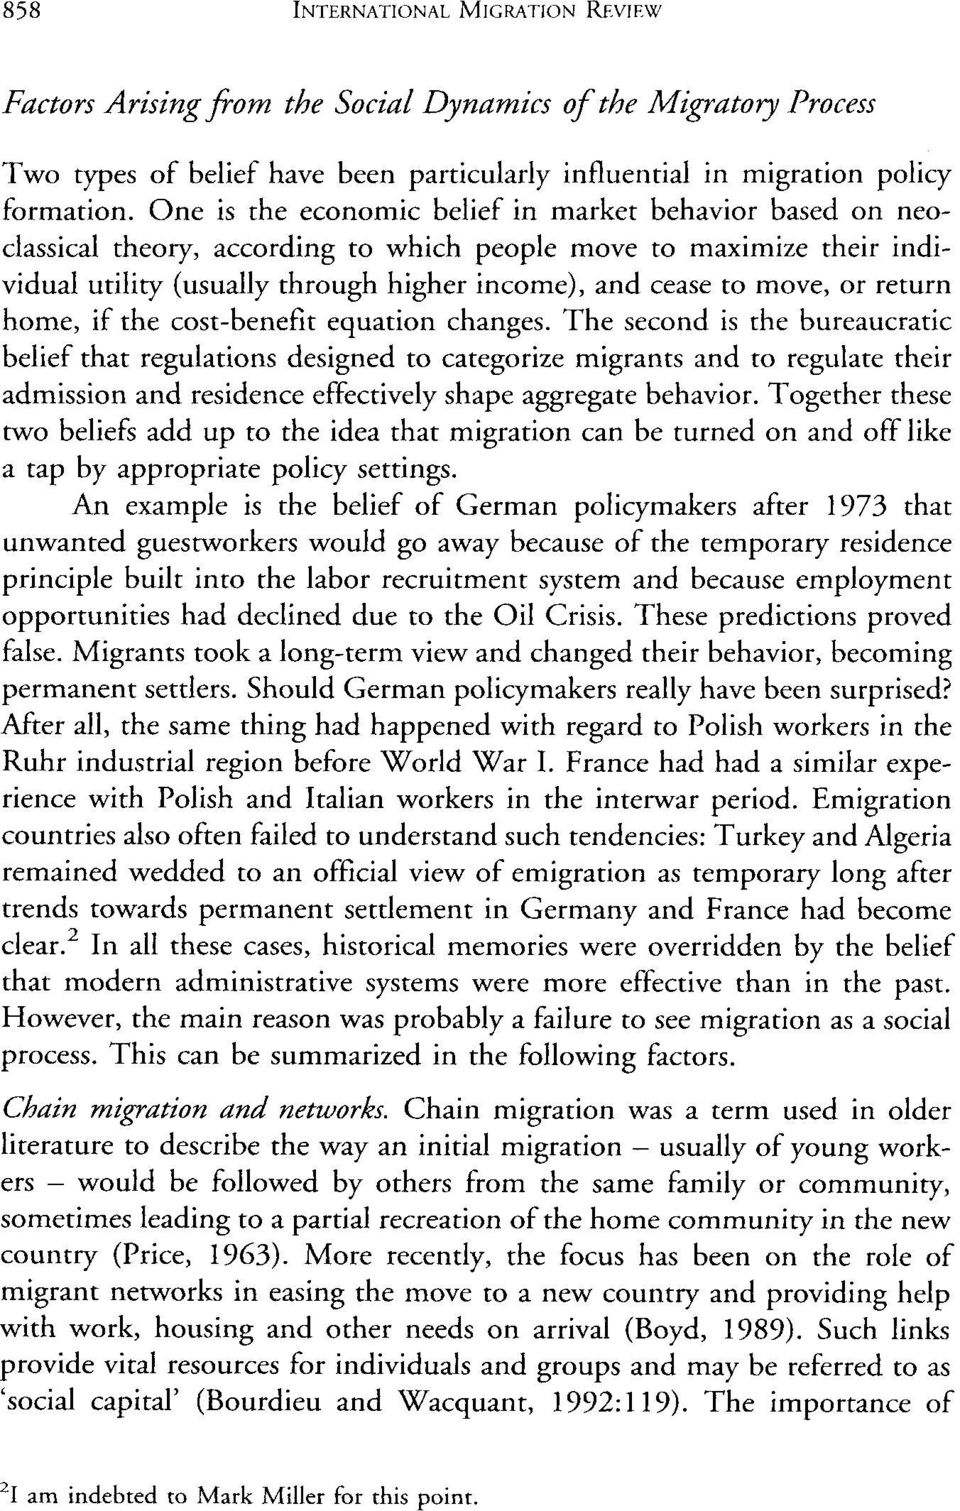 costbenefit equation changes. The second is bureaucratic belief that regulations designed categorize migrants regulate ir admission residence effectively shape aggregate behavior.